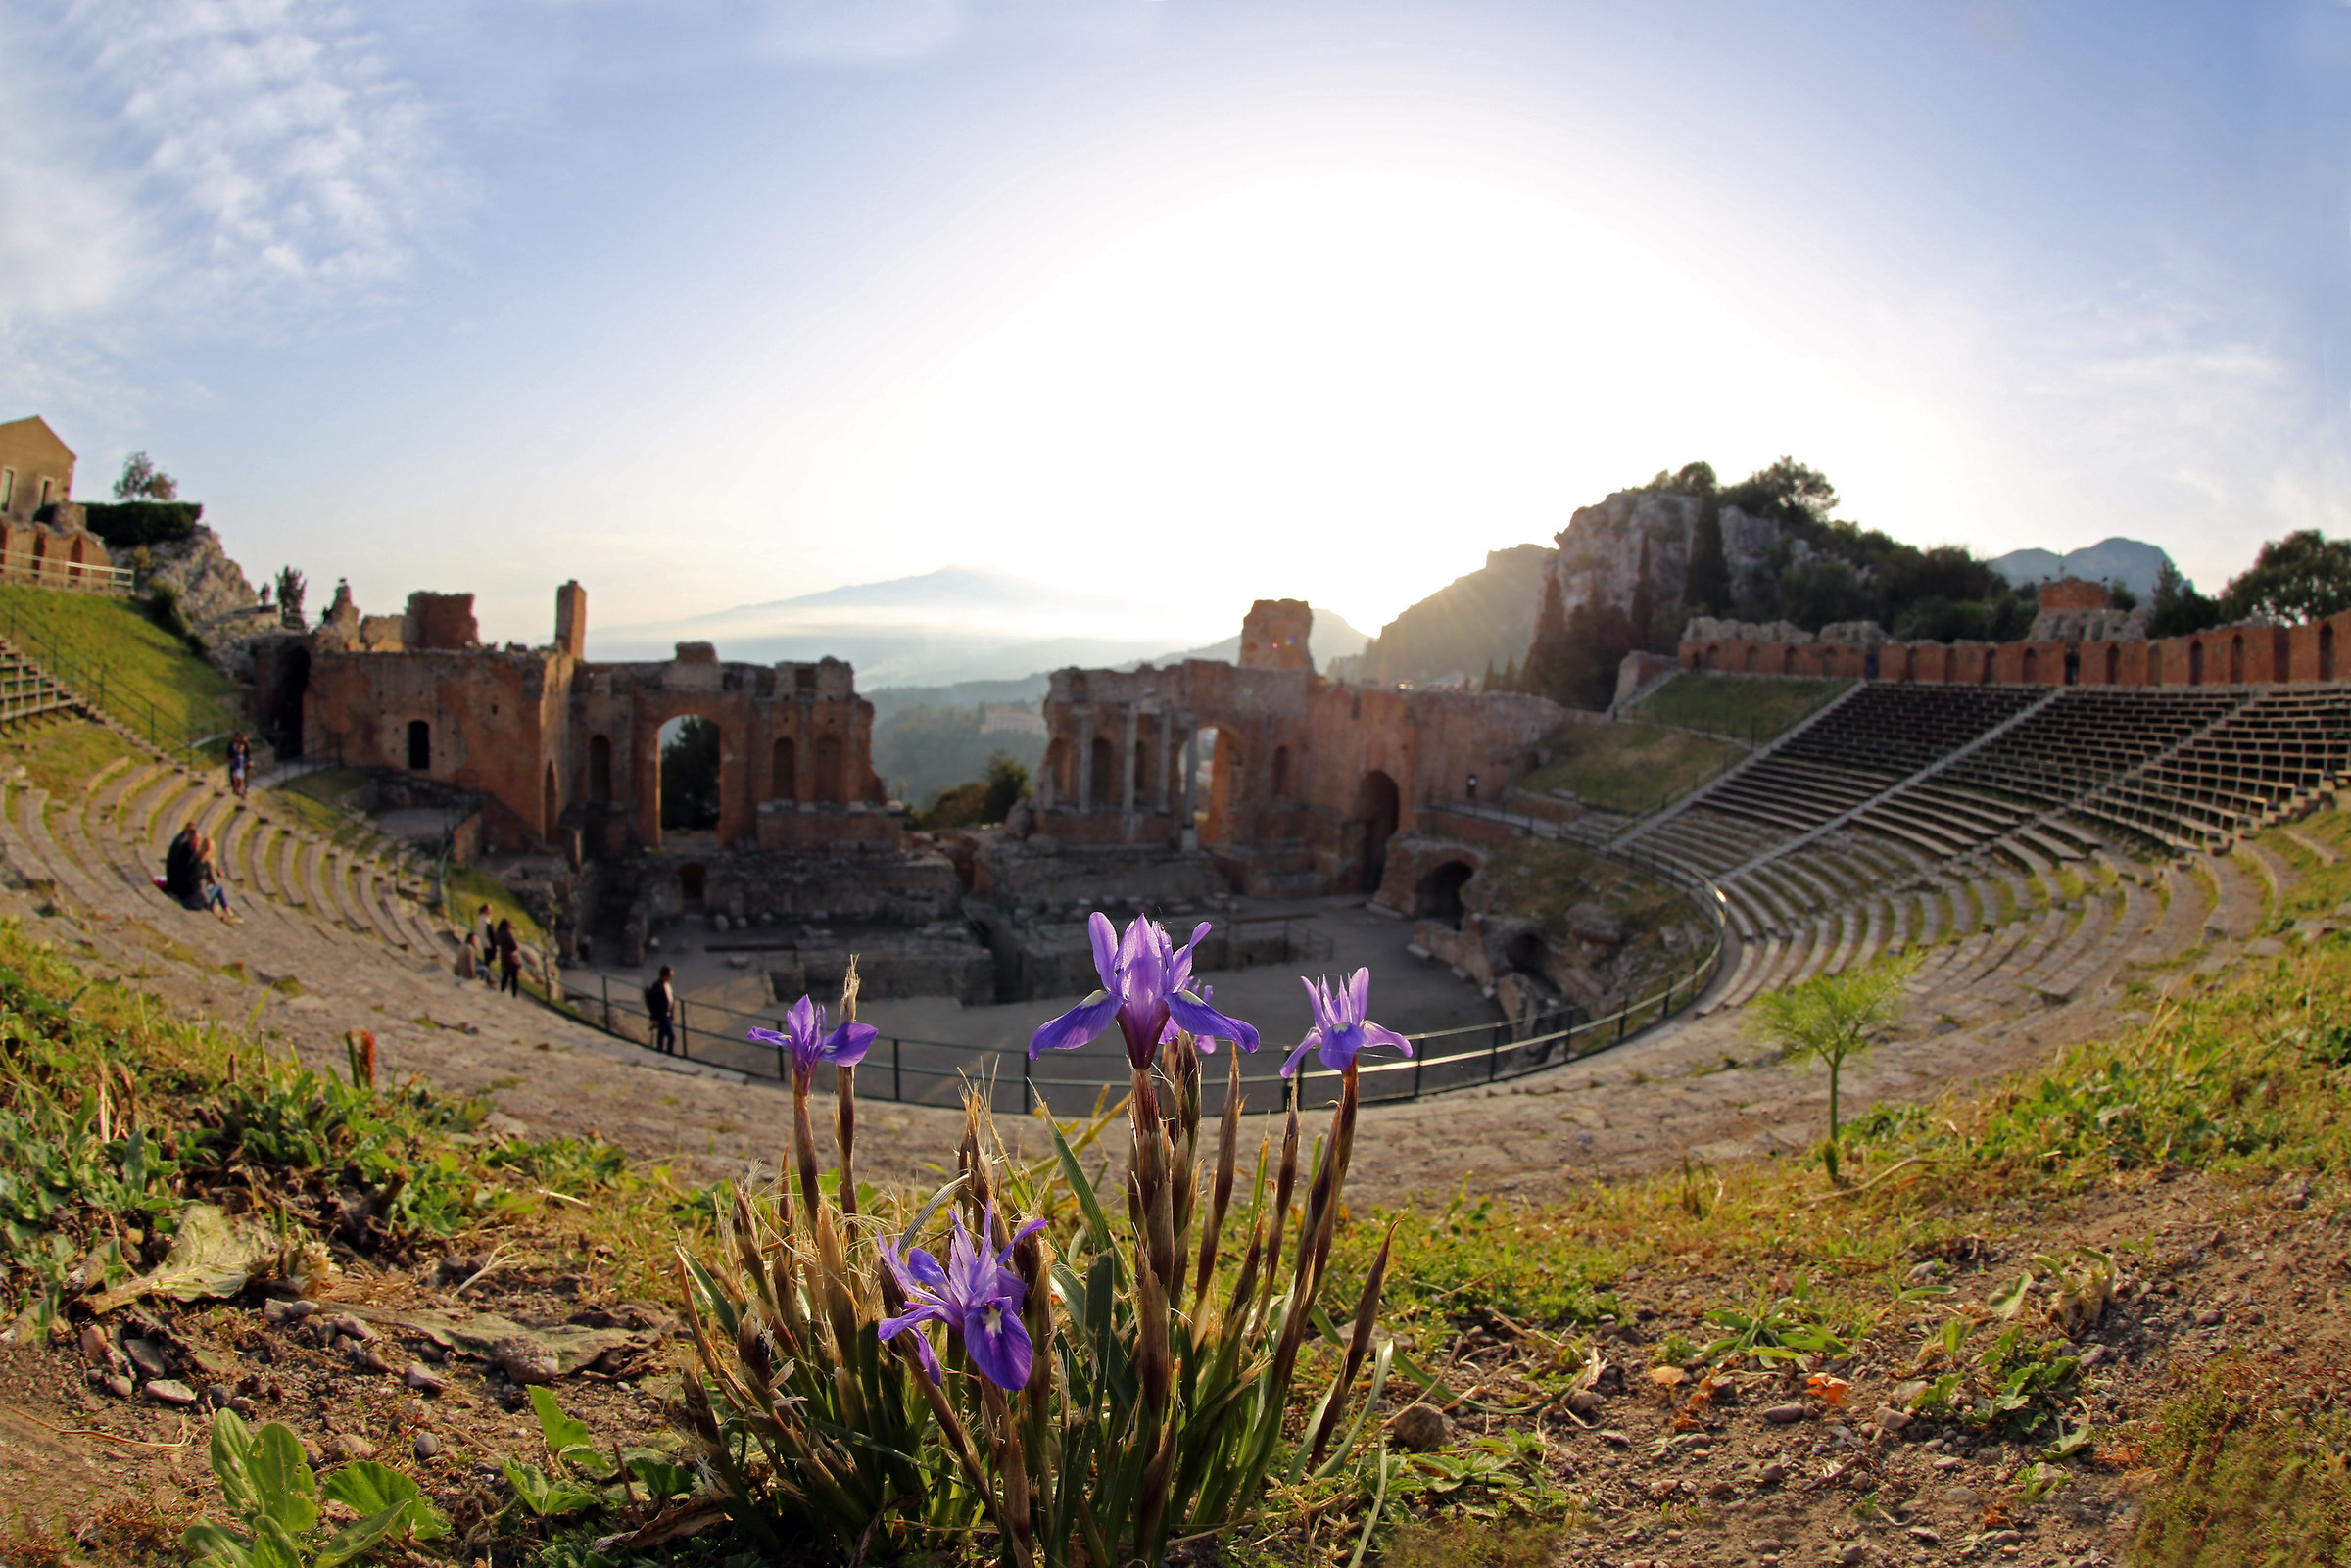 Fiorello at the Greek Theatre in taormina...